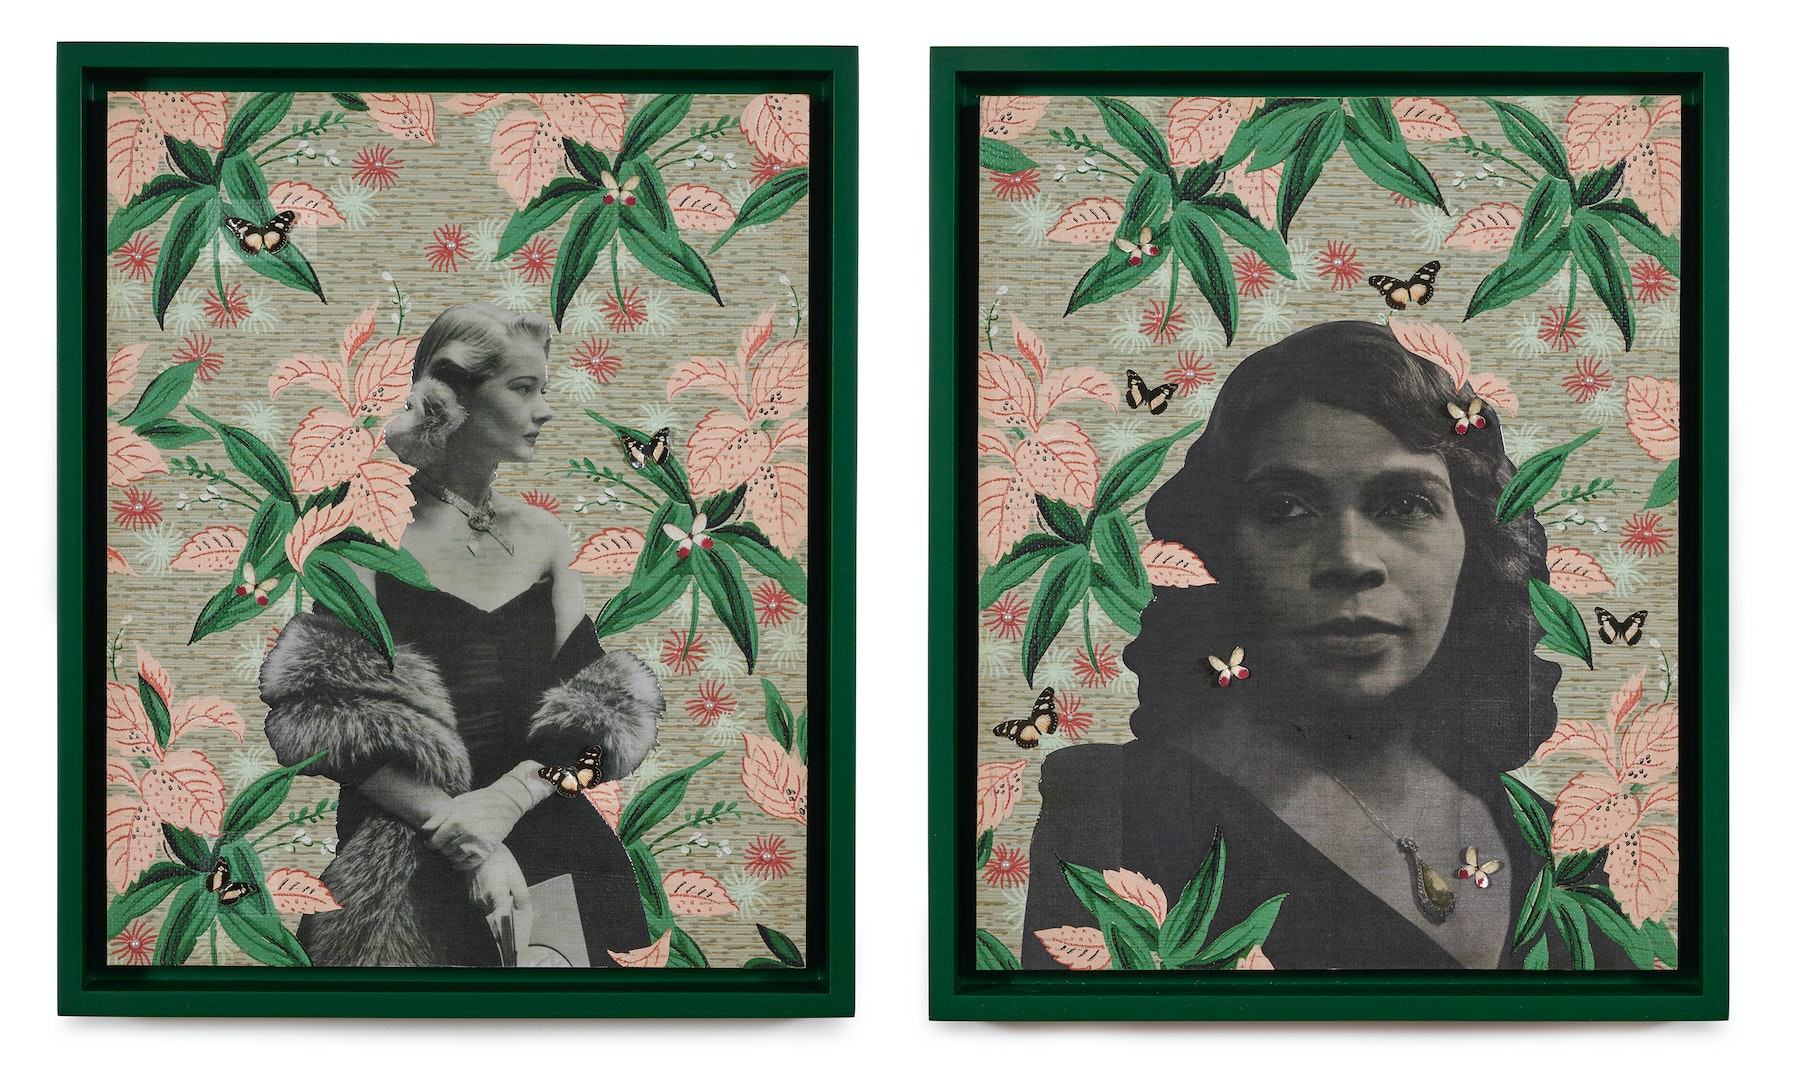 """Genevieve Gaignard """"Nobody Knows De Troubles I've Seen,"""" 2021 Mixed media on panels Diptych; 20"""" x 16"""" [HxW] (40.64 x 50.8 cm) each Inventory #GEN348 Courtesy of the artist and Vielmetter Los Angeles Photo credit: Thomas Clark"""